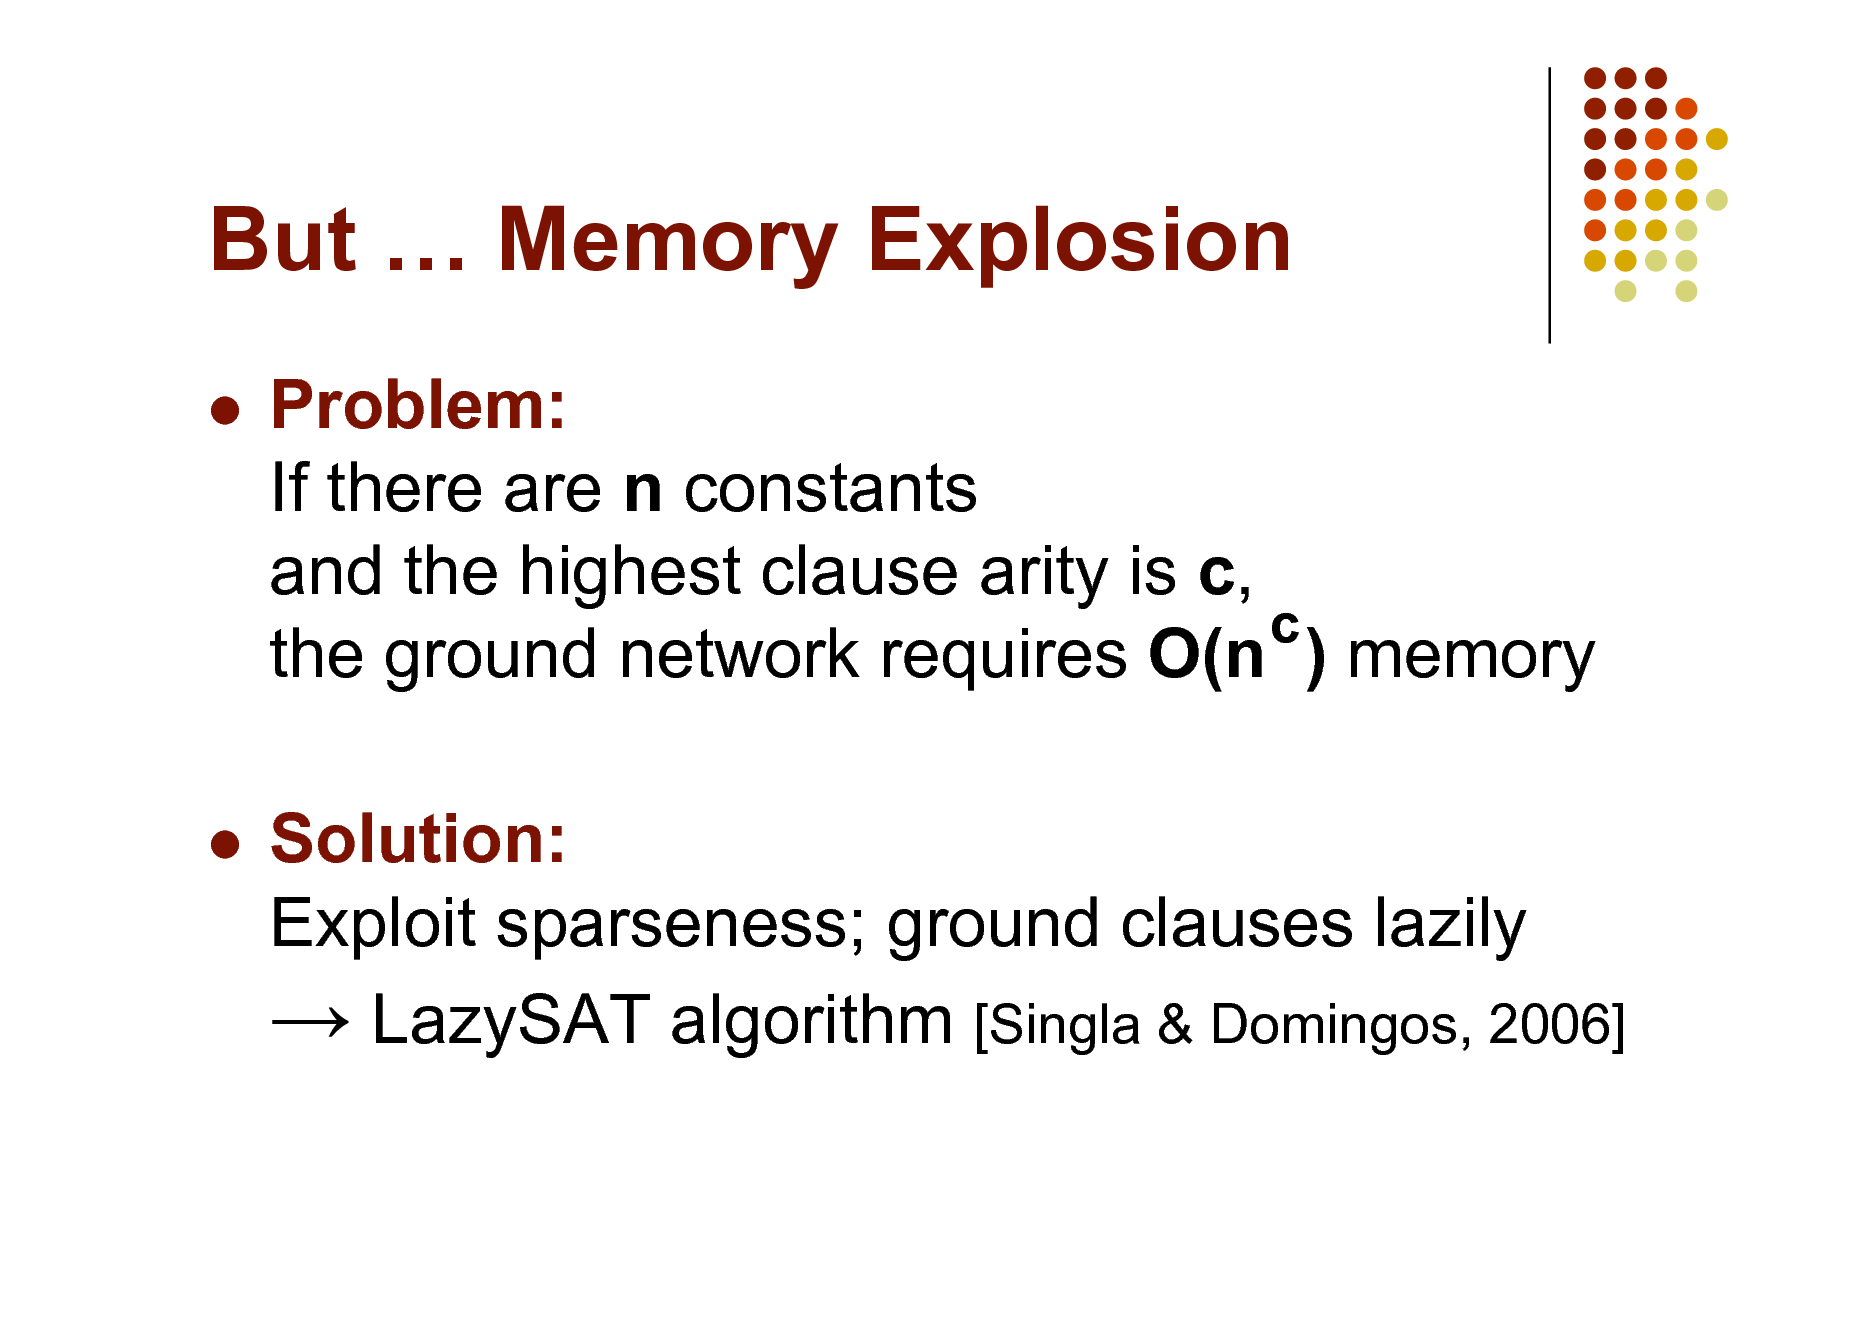 Slide: But  Memory Explosion   Problem: If there are n constants and the highest clause arity is c, c the ground network requires O(n ) memory Solution: Exploit sparseness; ground clauses lazily  LazySAT algorithm [Singla & Domingos, 2006]